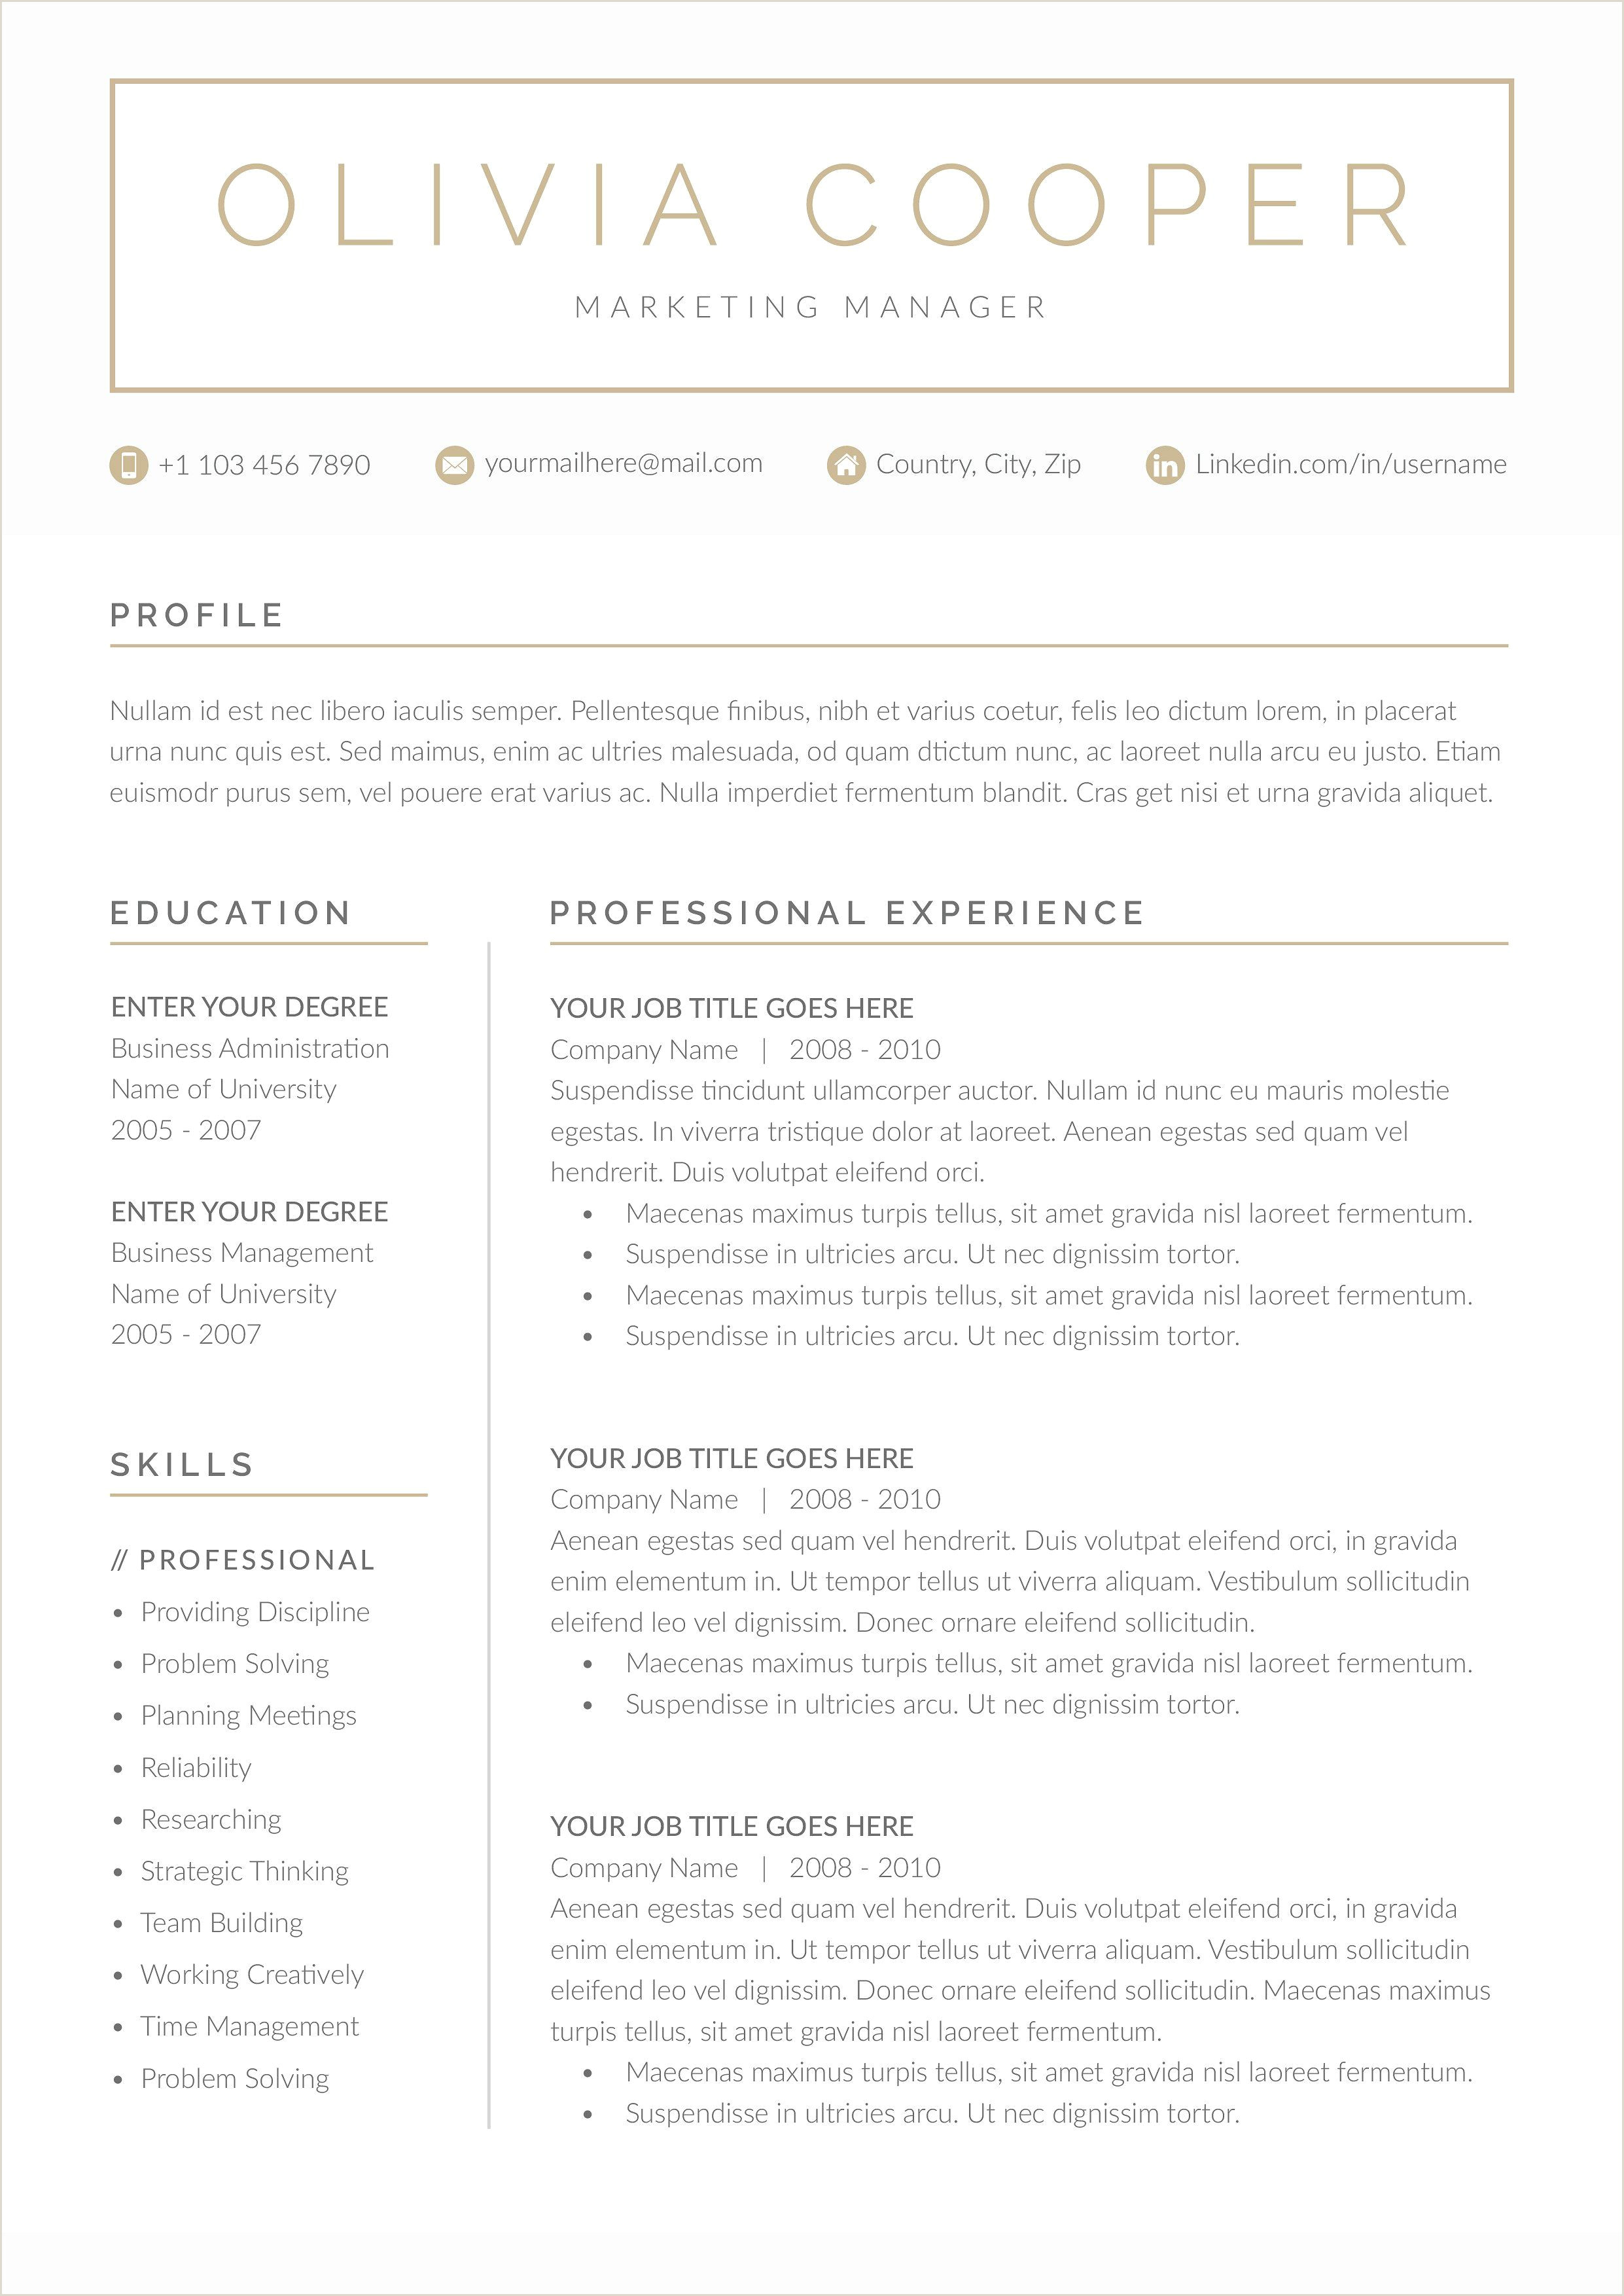 Word Resume & Cover Letter Template Wel e to the